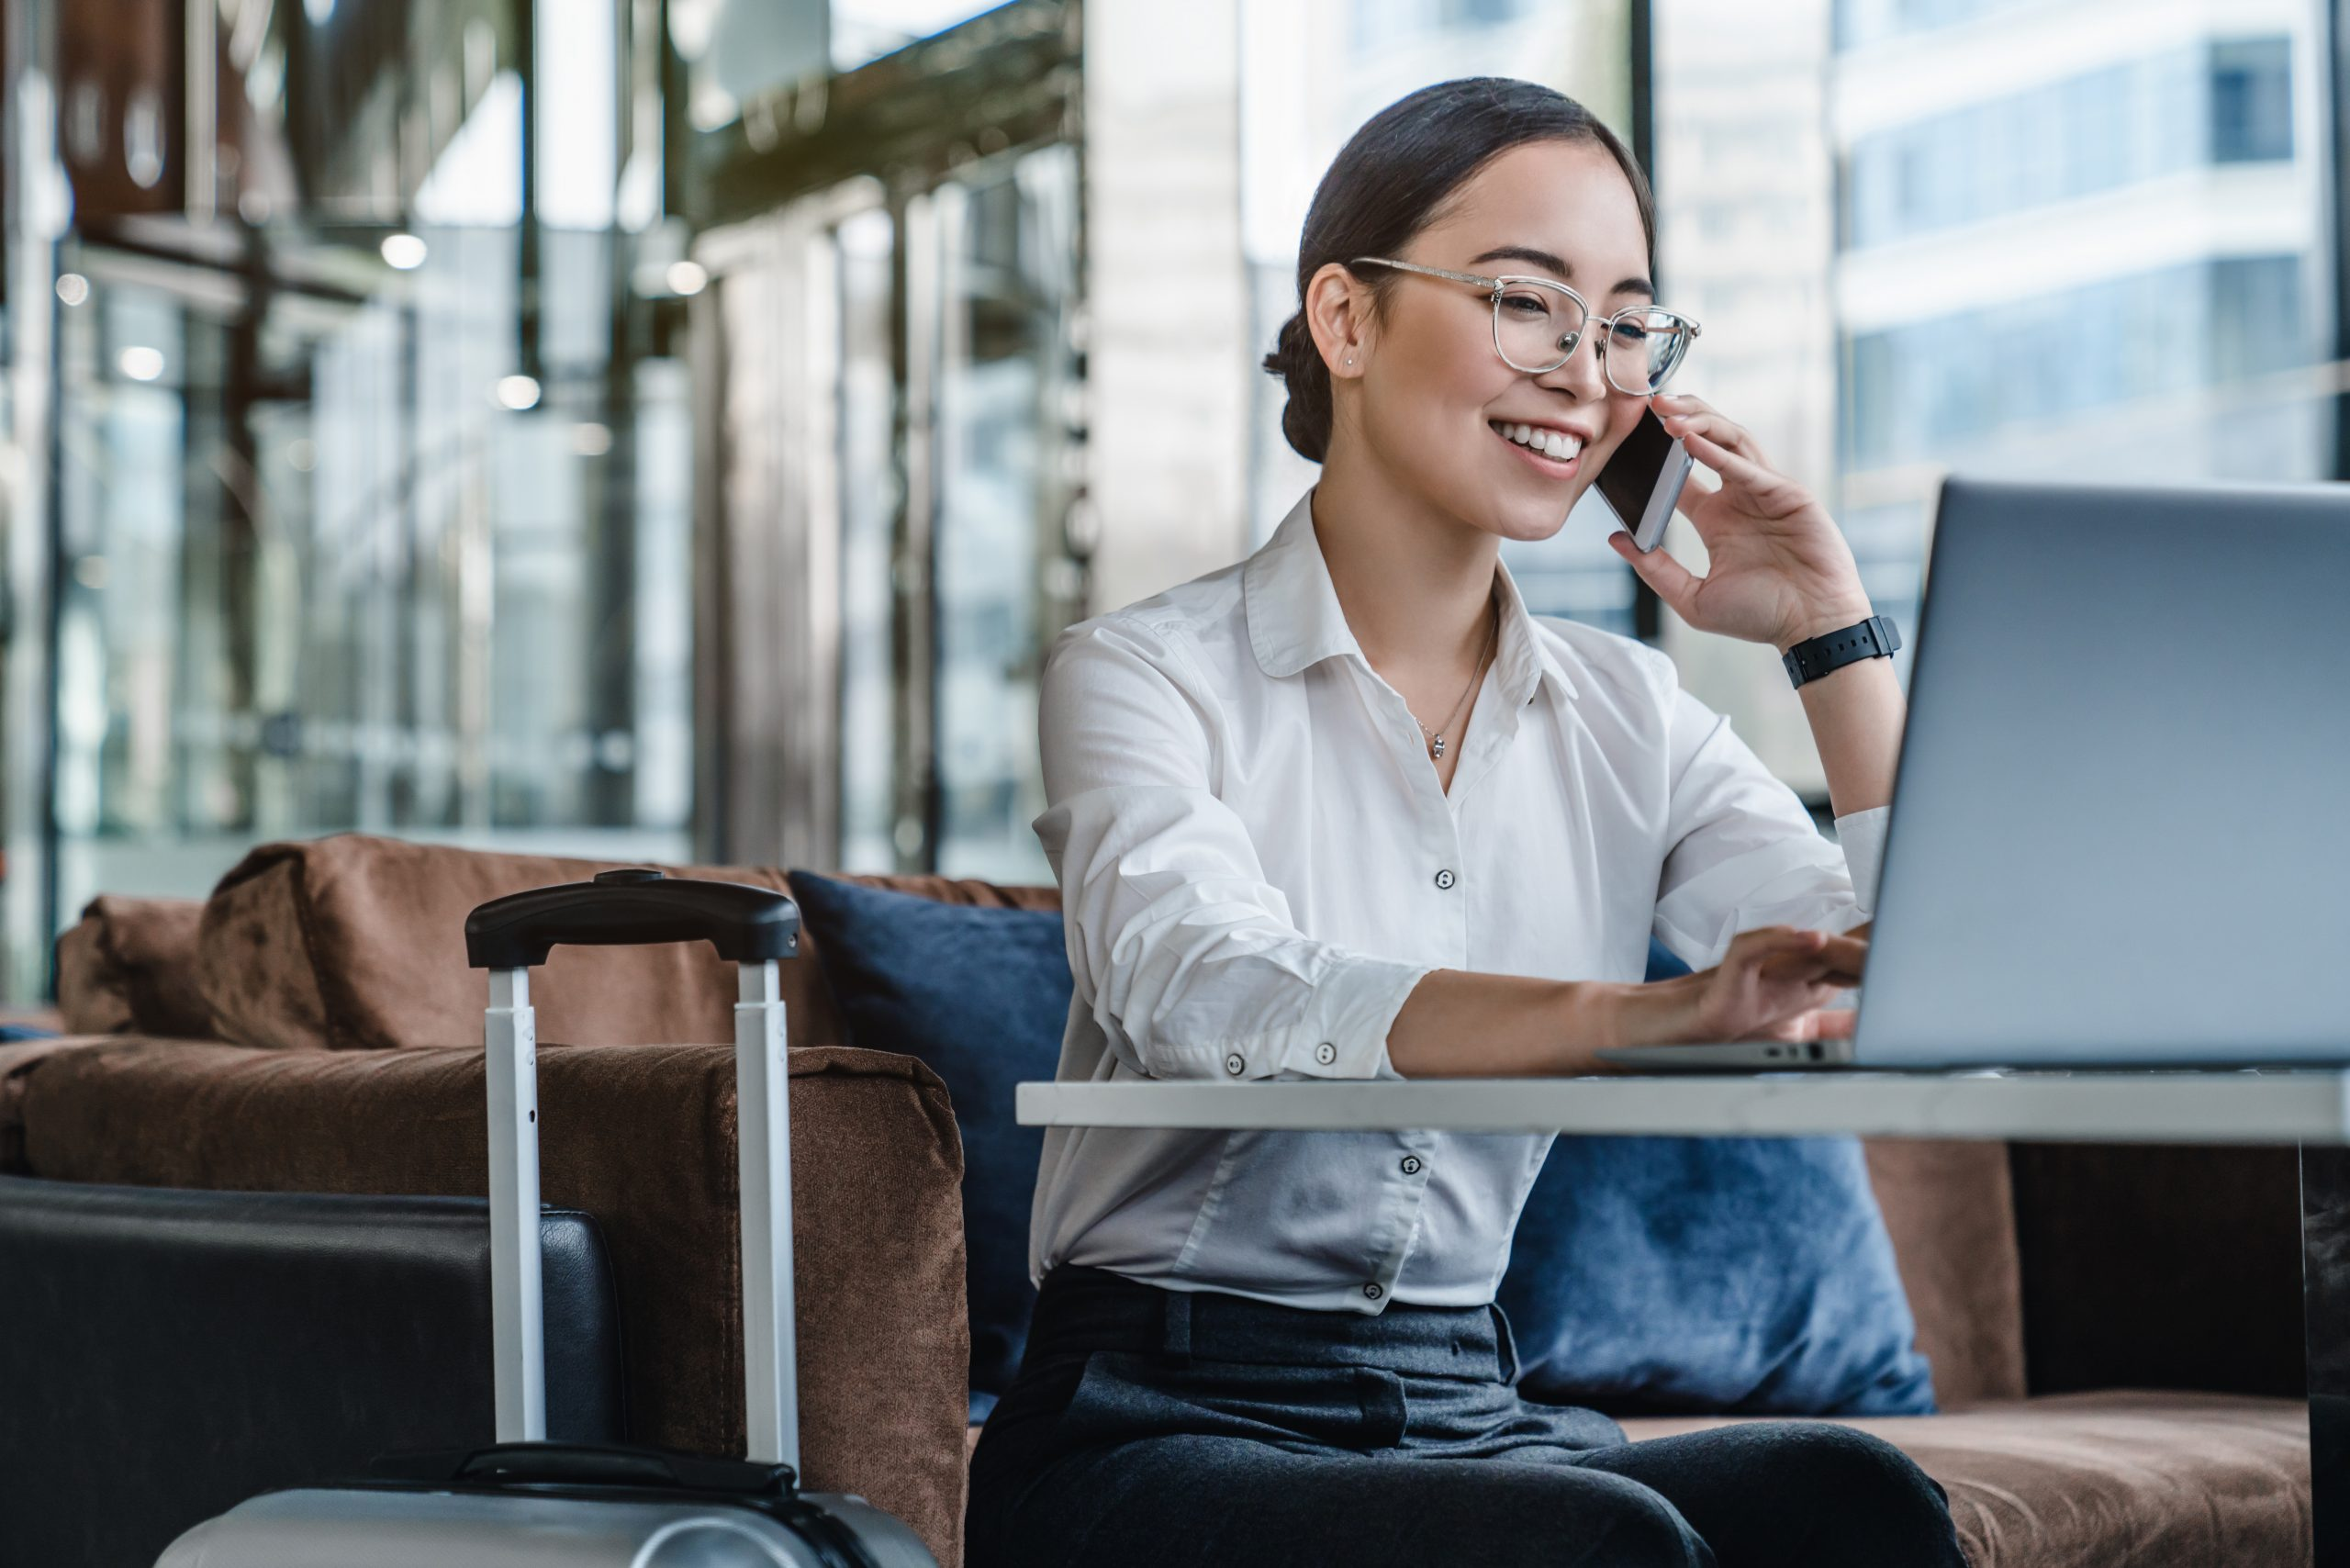 Asian female sitting at airport before trip having telephonic conversation with client and smiling.